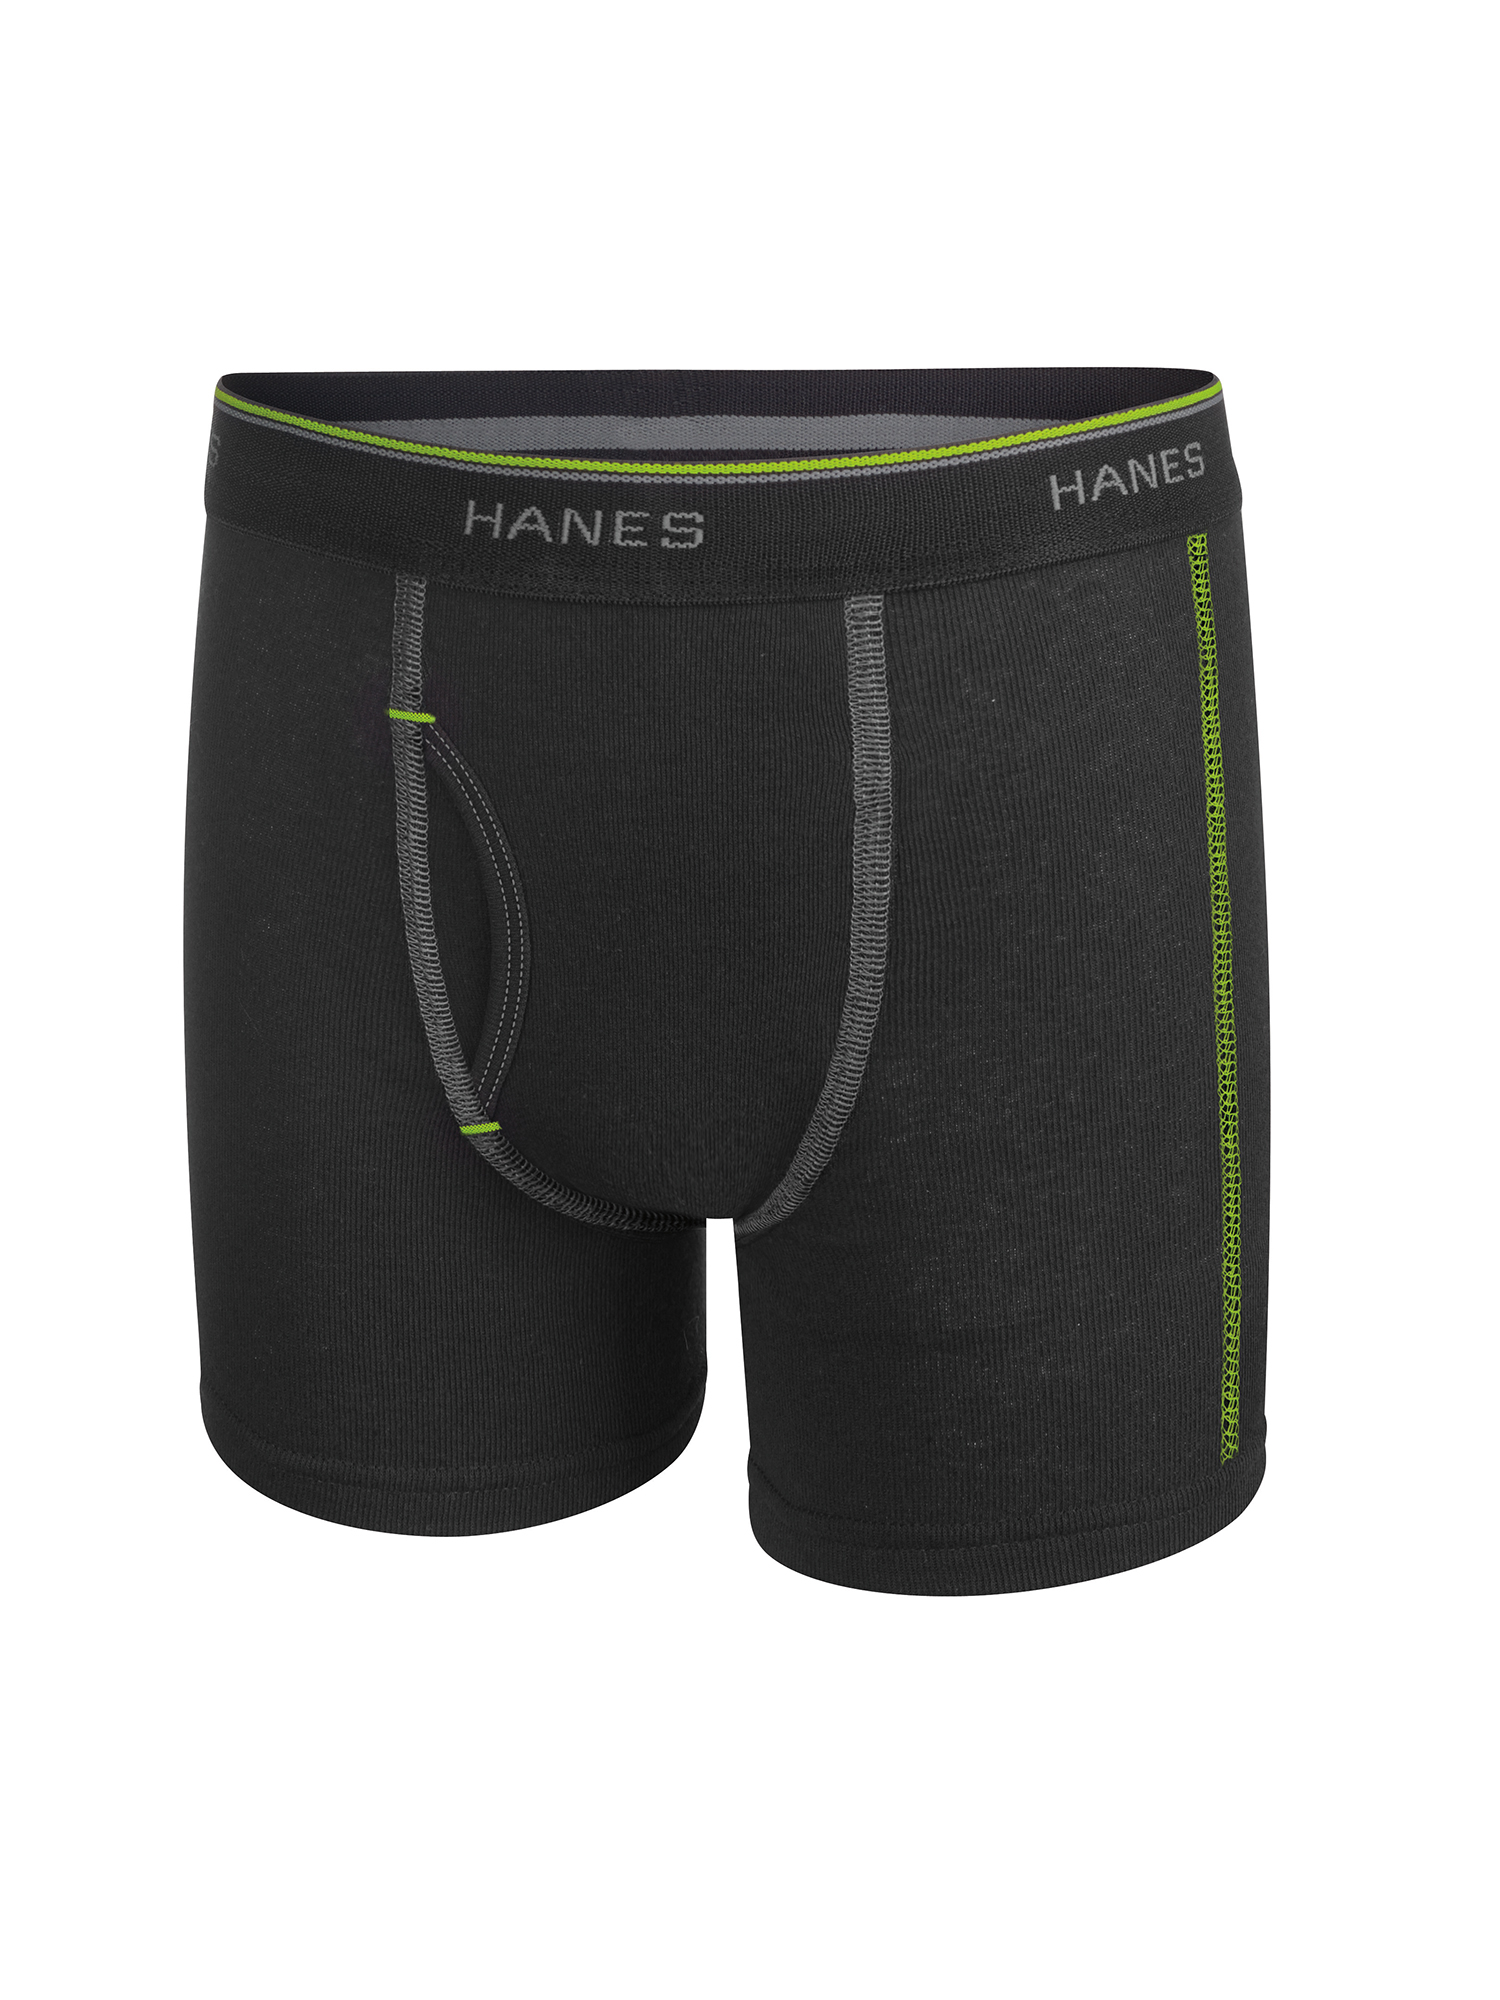 Hanes Boys Underwear, 7 Pack Tagless Boy's Boxer Briefs Assorted Colors, (Big Boys)